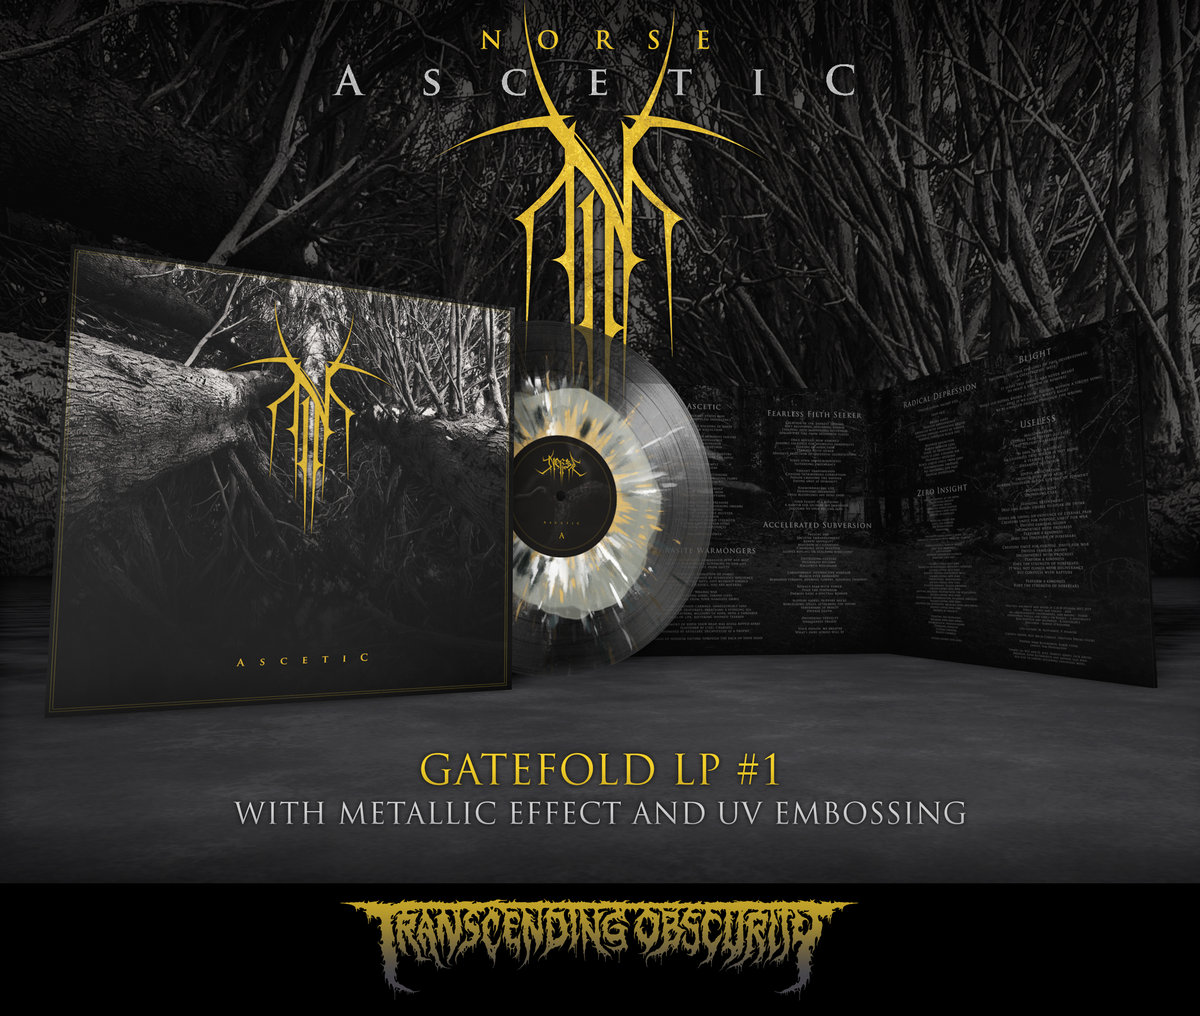 NORSE - Ascetic Gatefold LP with Metallic Effect and Embossing (Limited to 100 per variant)